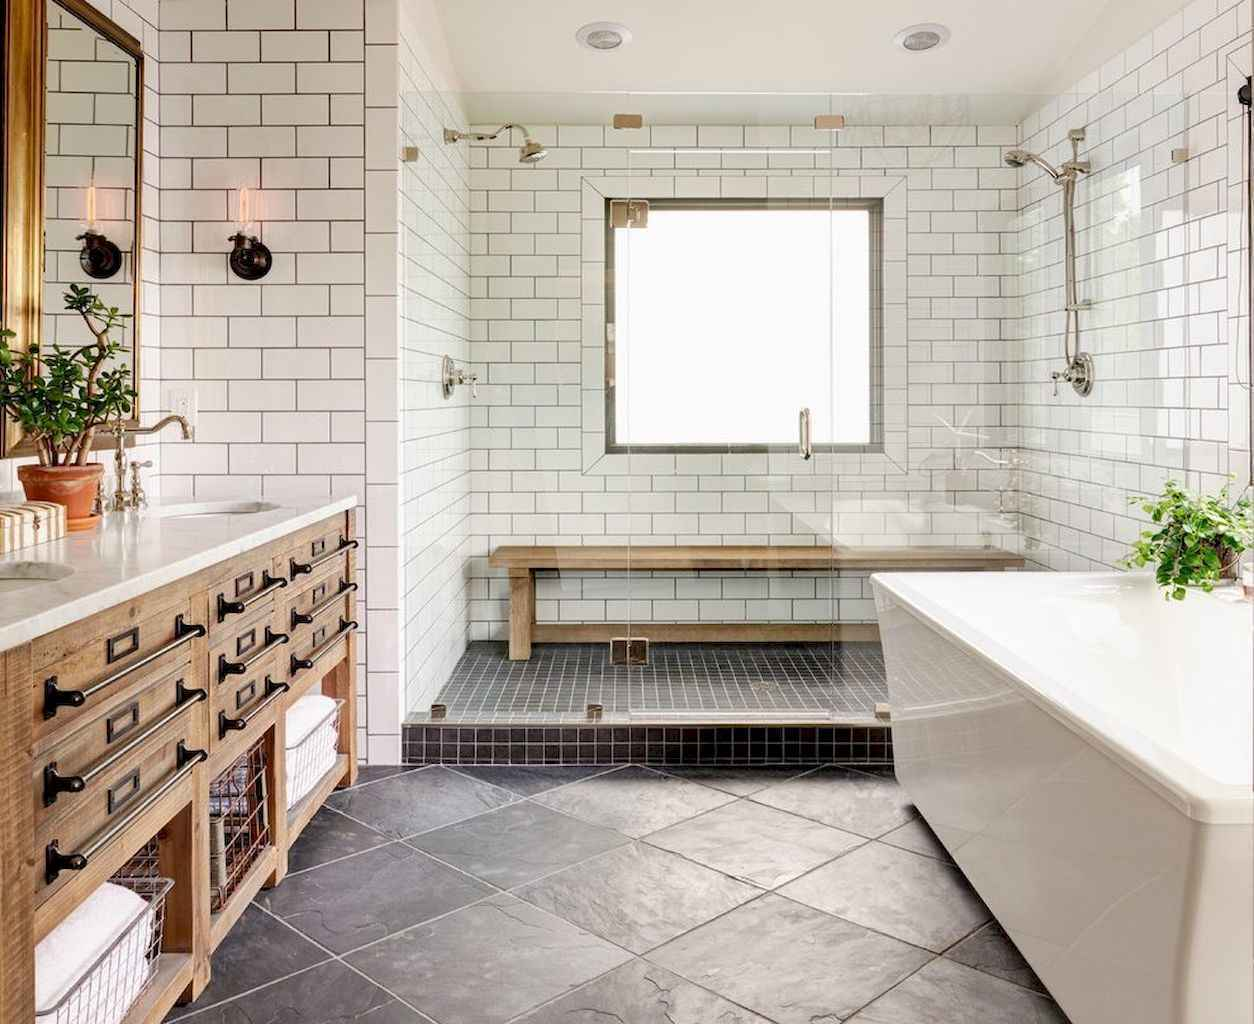 100 Farmhouse Bathroom Tile Shower Decor Ideas And Remodel To ...